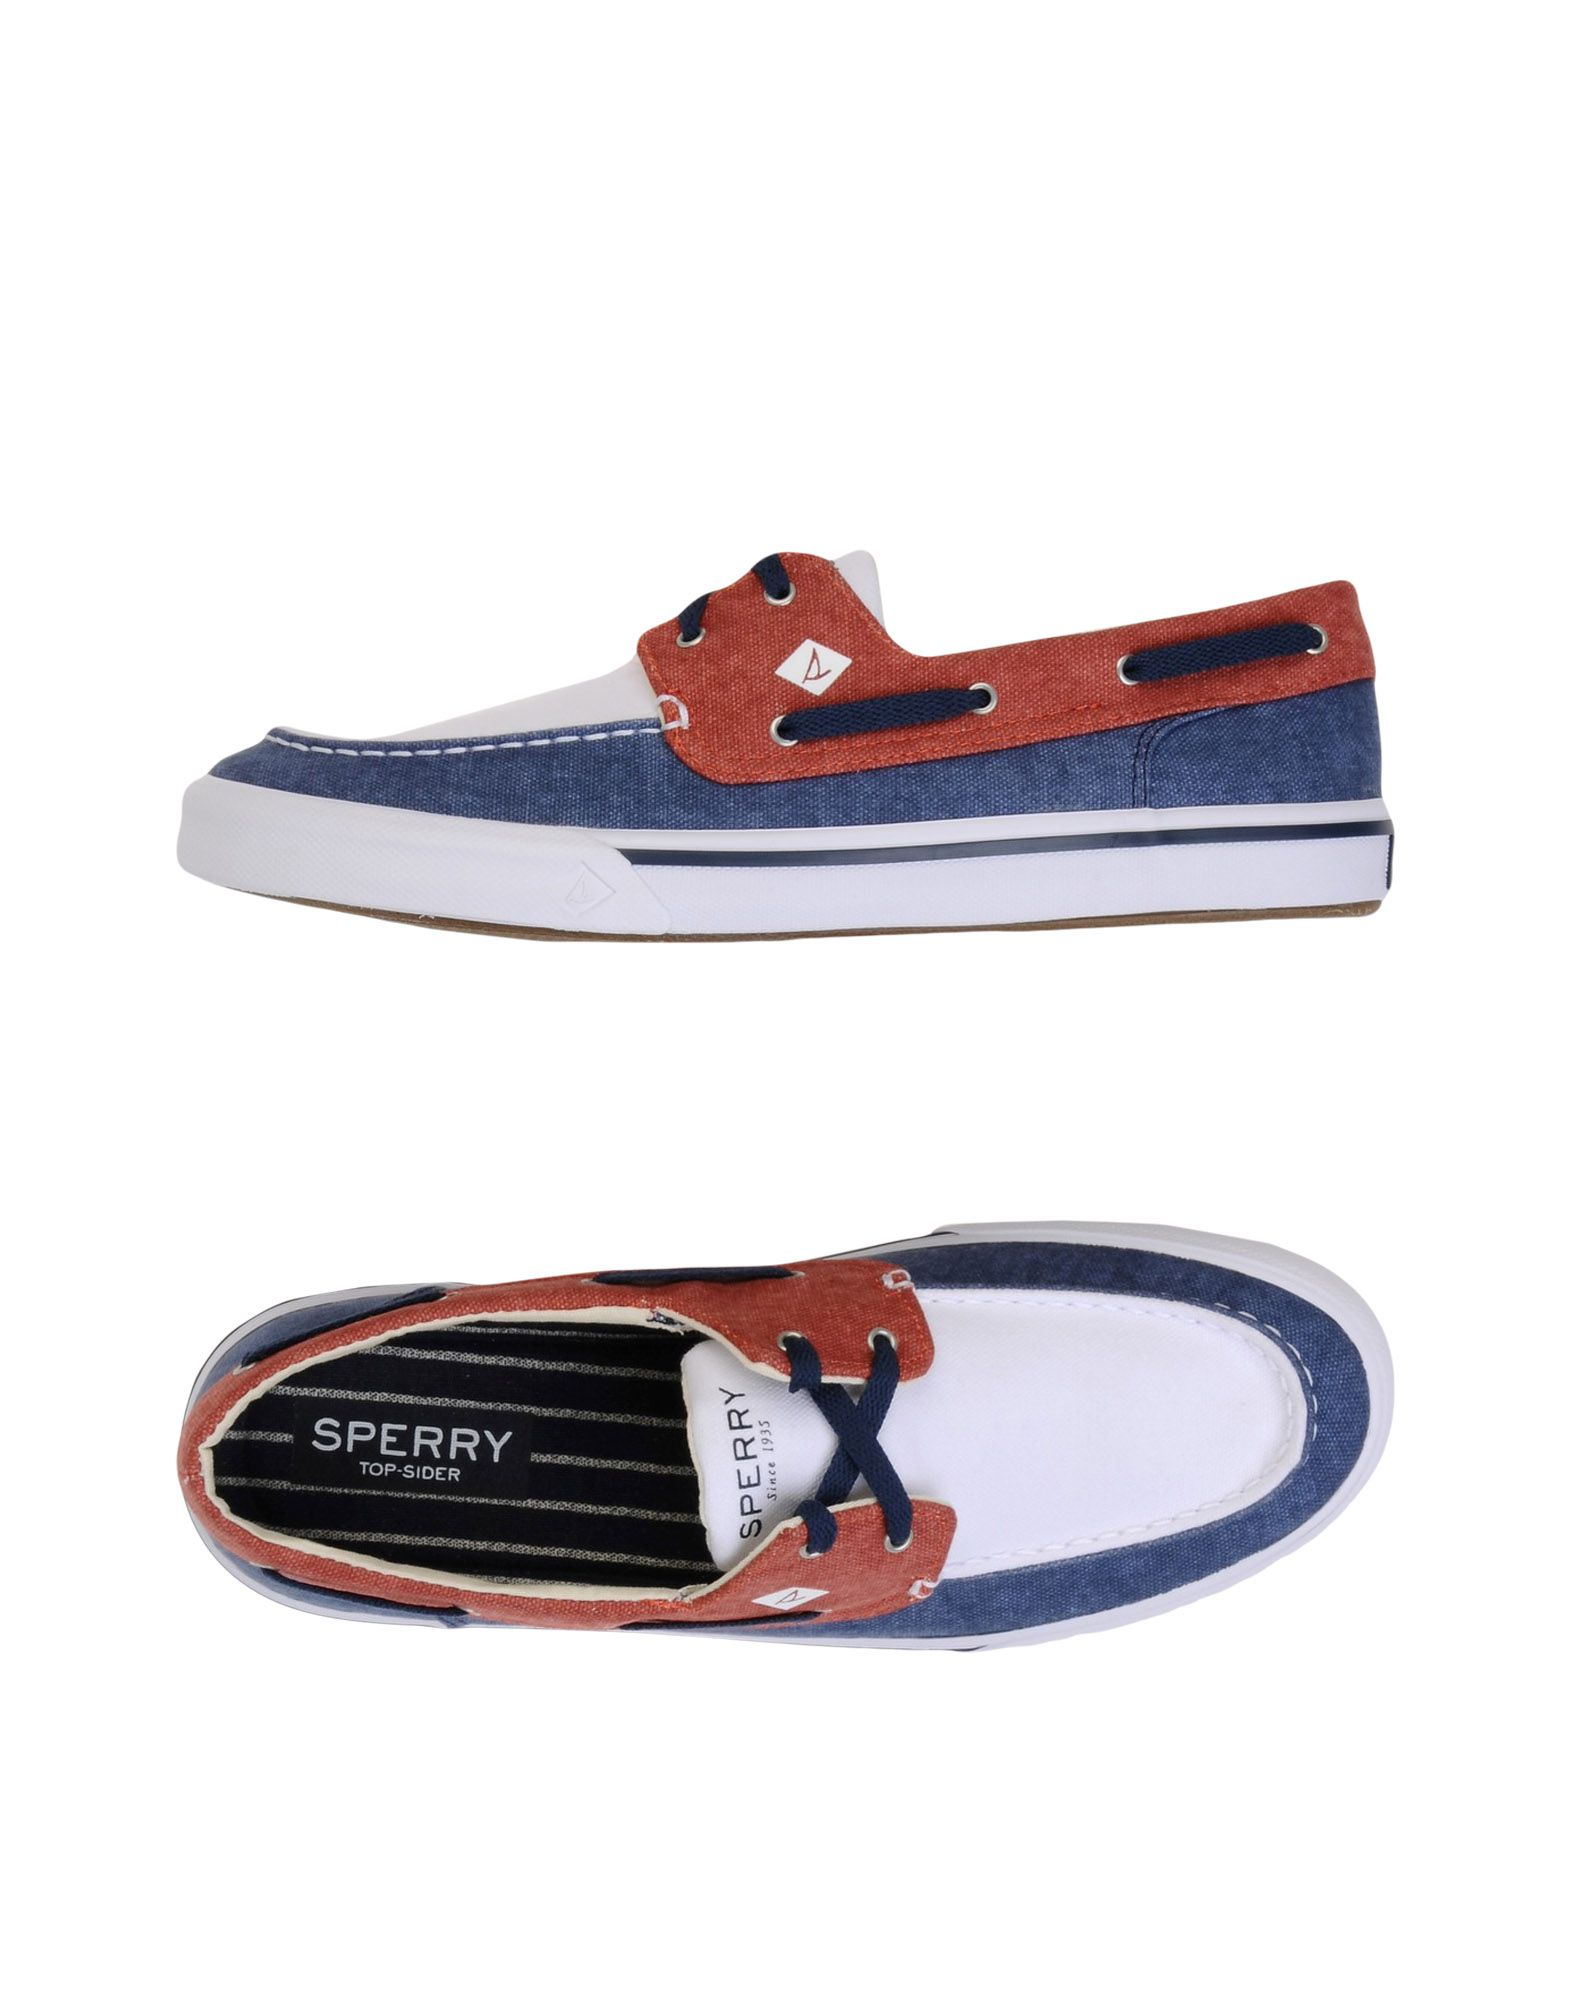 Mocassino Washed Sperry Top-Sider Striper Ii Boat Washed Mocassino - Uomo - 11472295LM 1d12b0